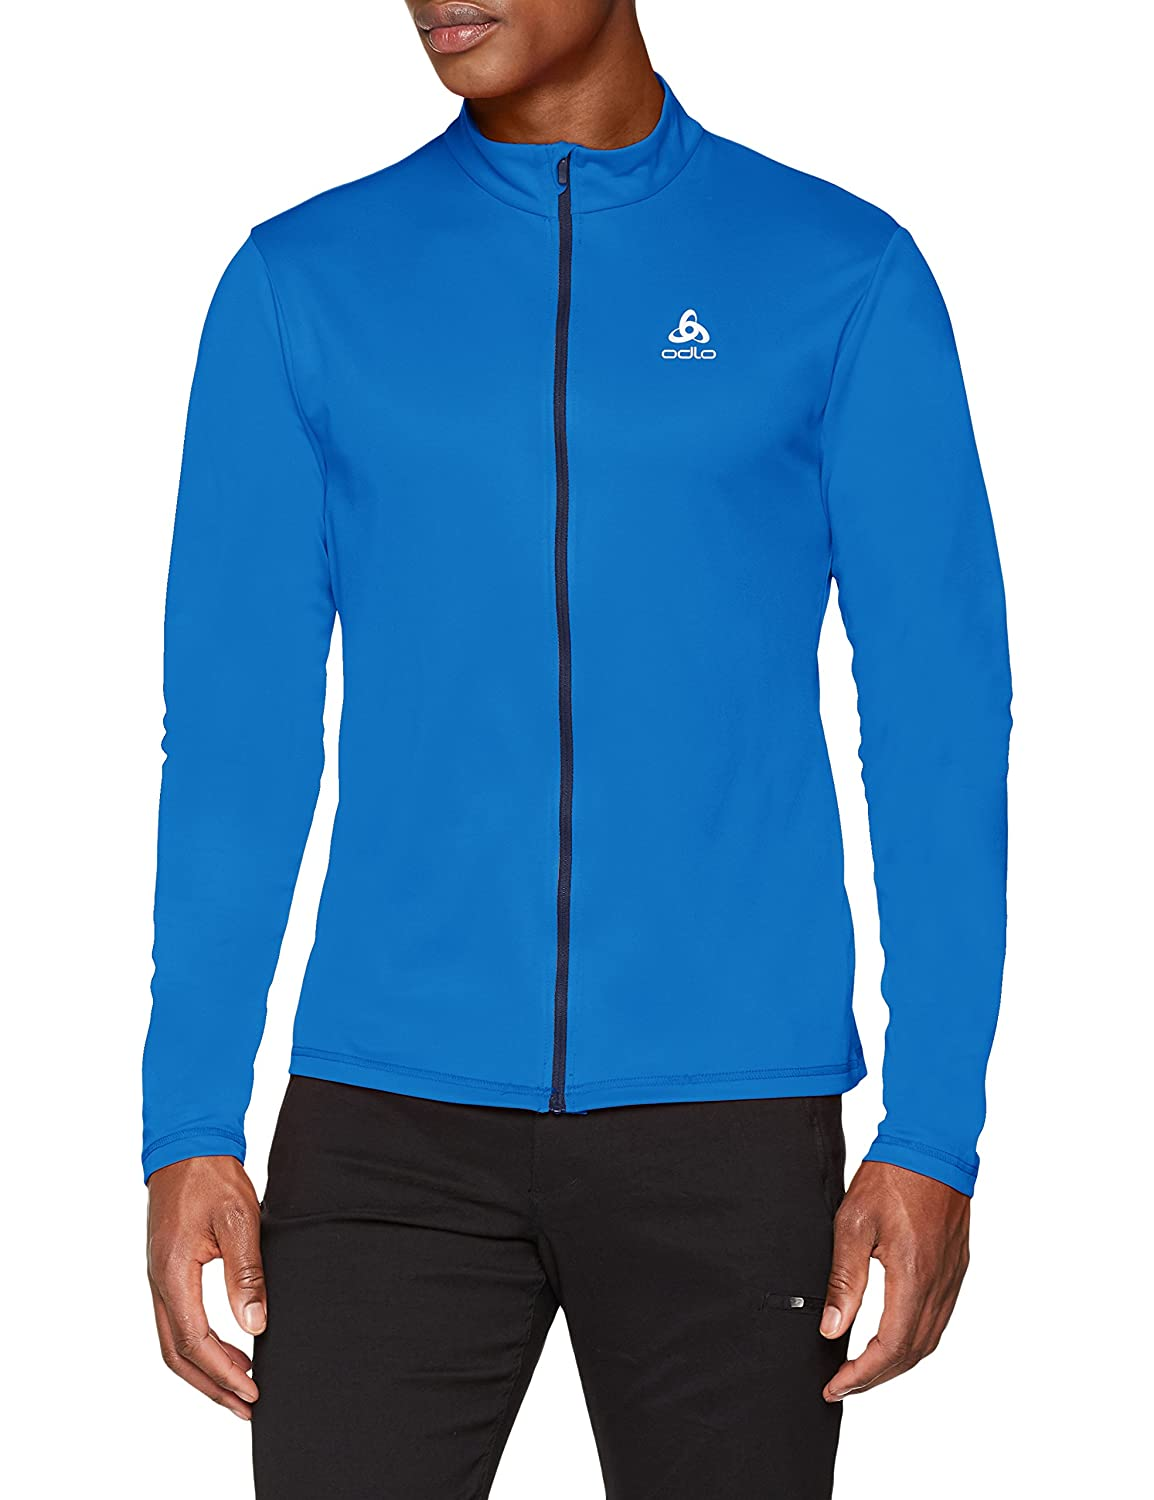 Odlo Herren Midlayer Full Zip Saikai Light Jacke